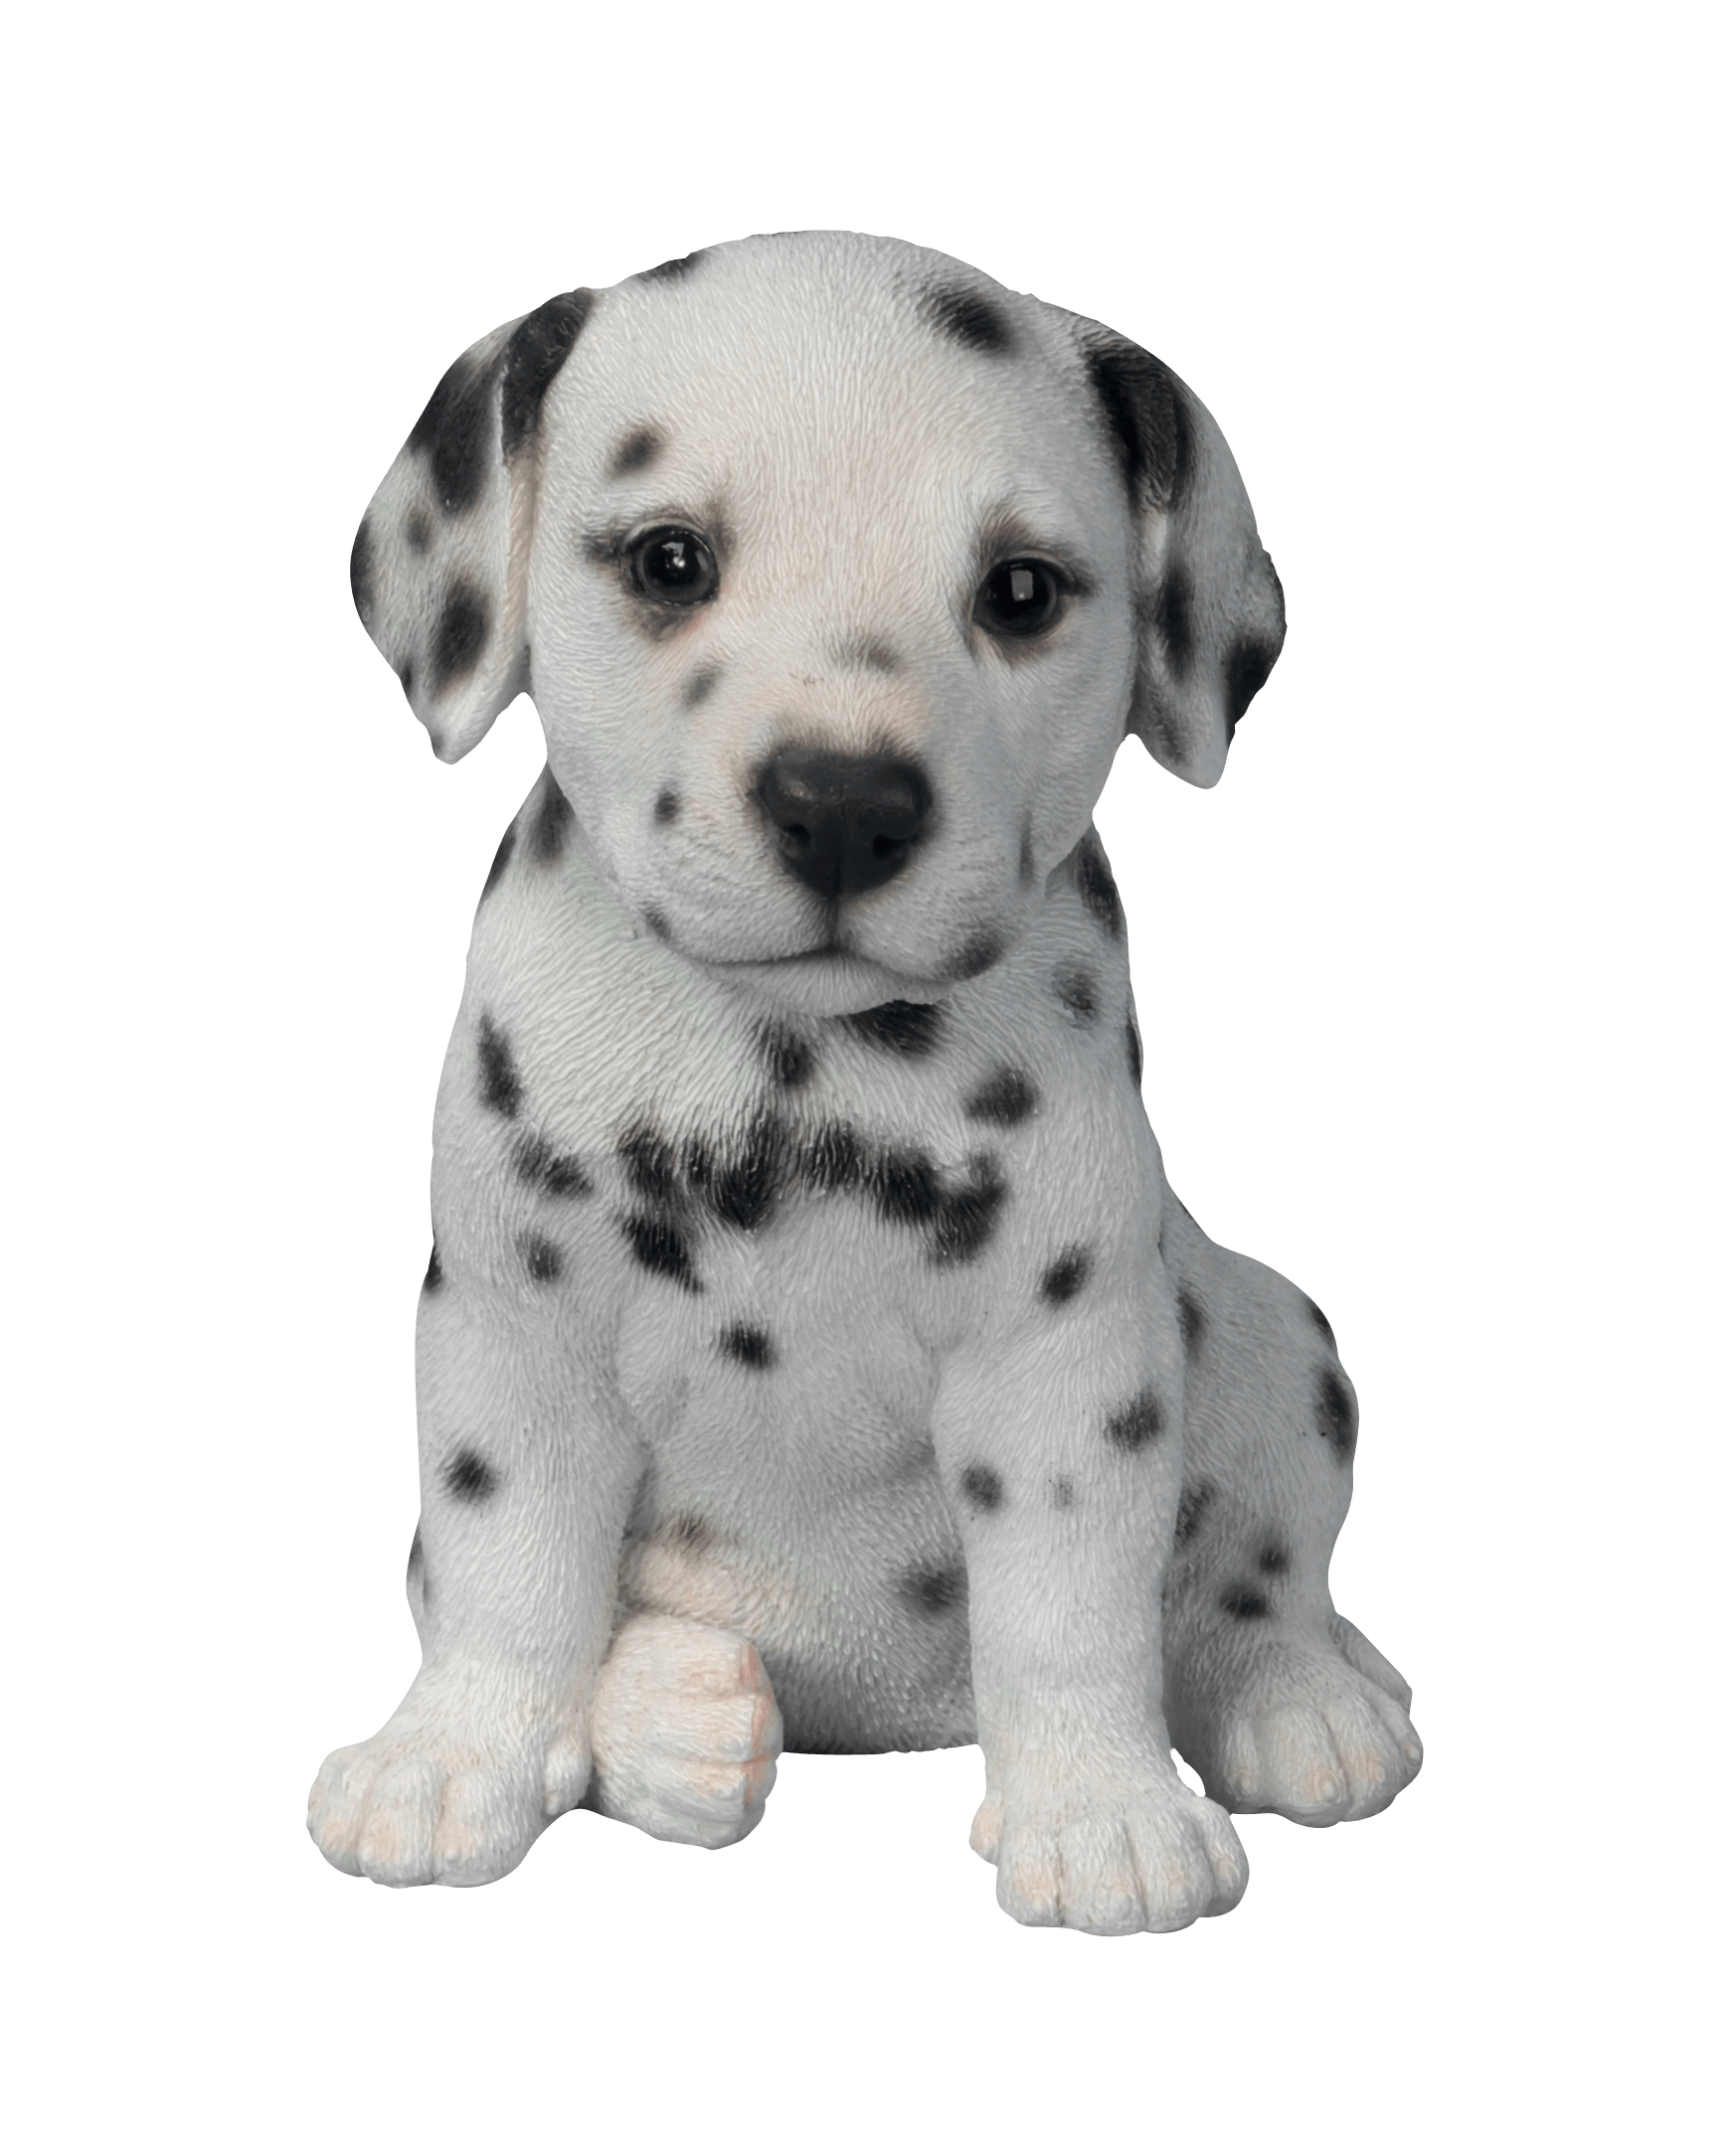 Puppy PNG - 22051